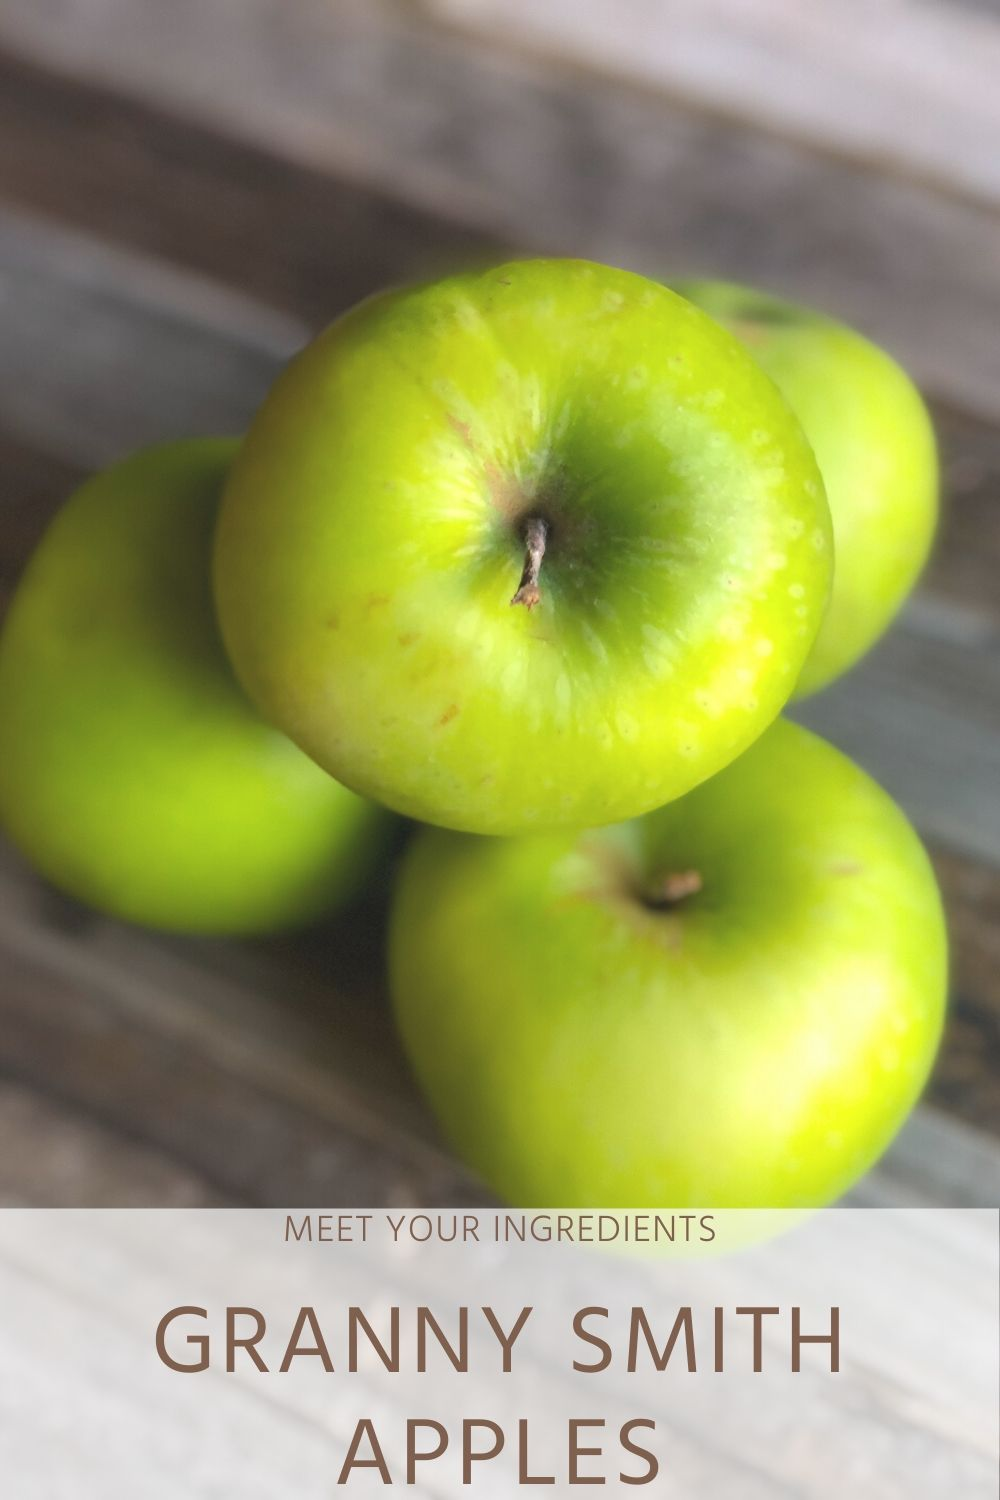 Dietitian Guide Granny Smith Apples